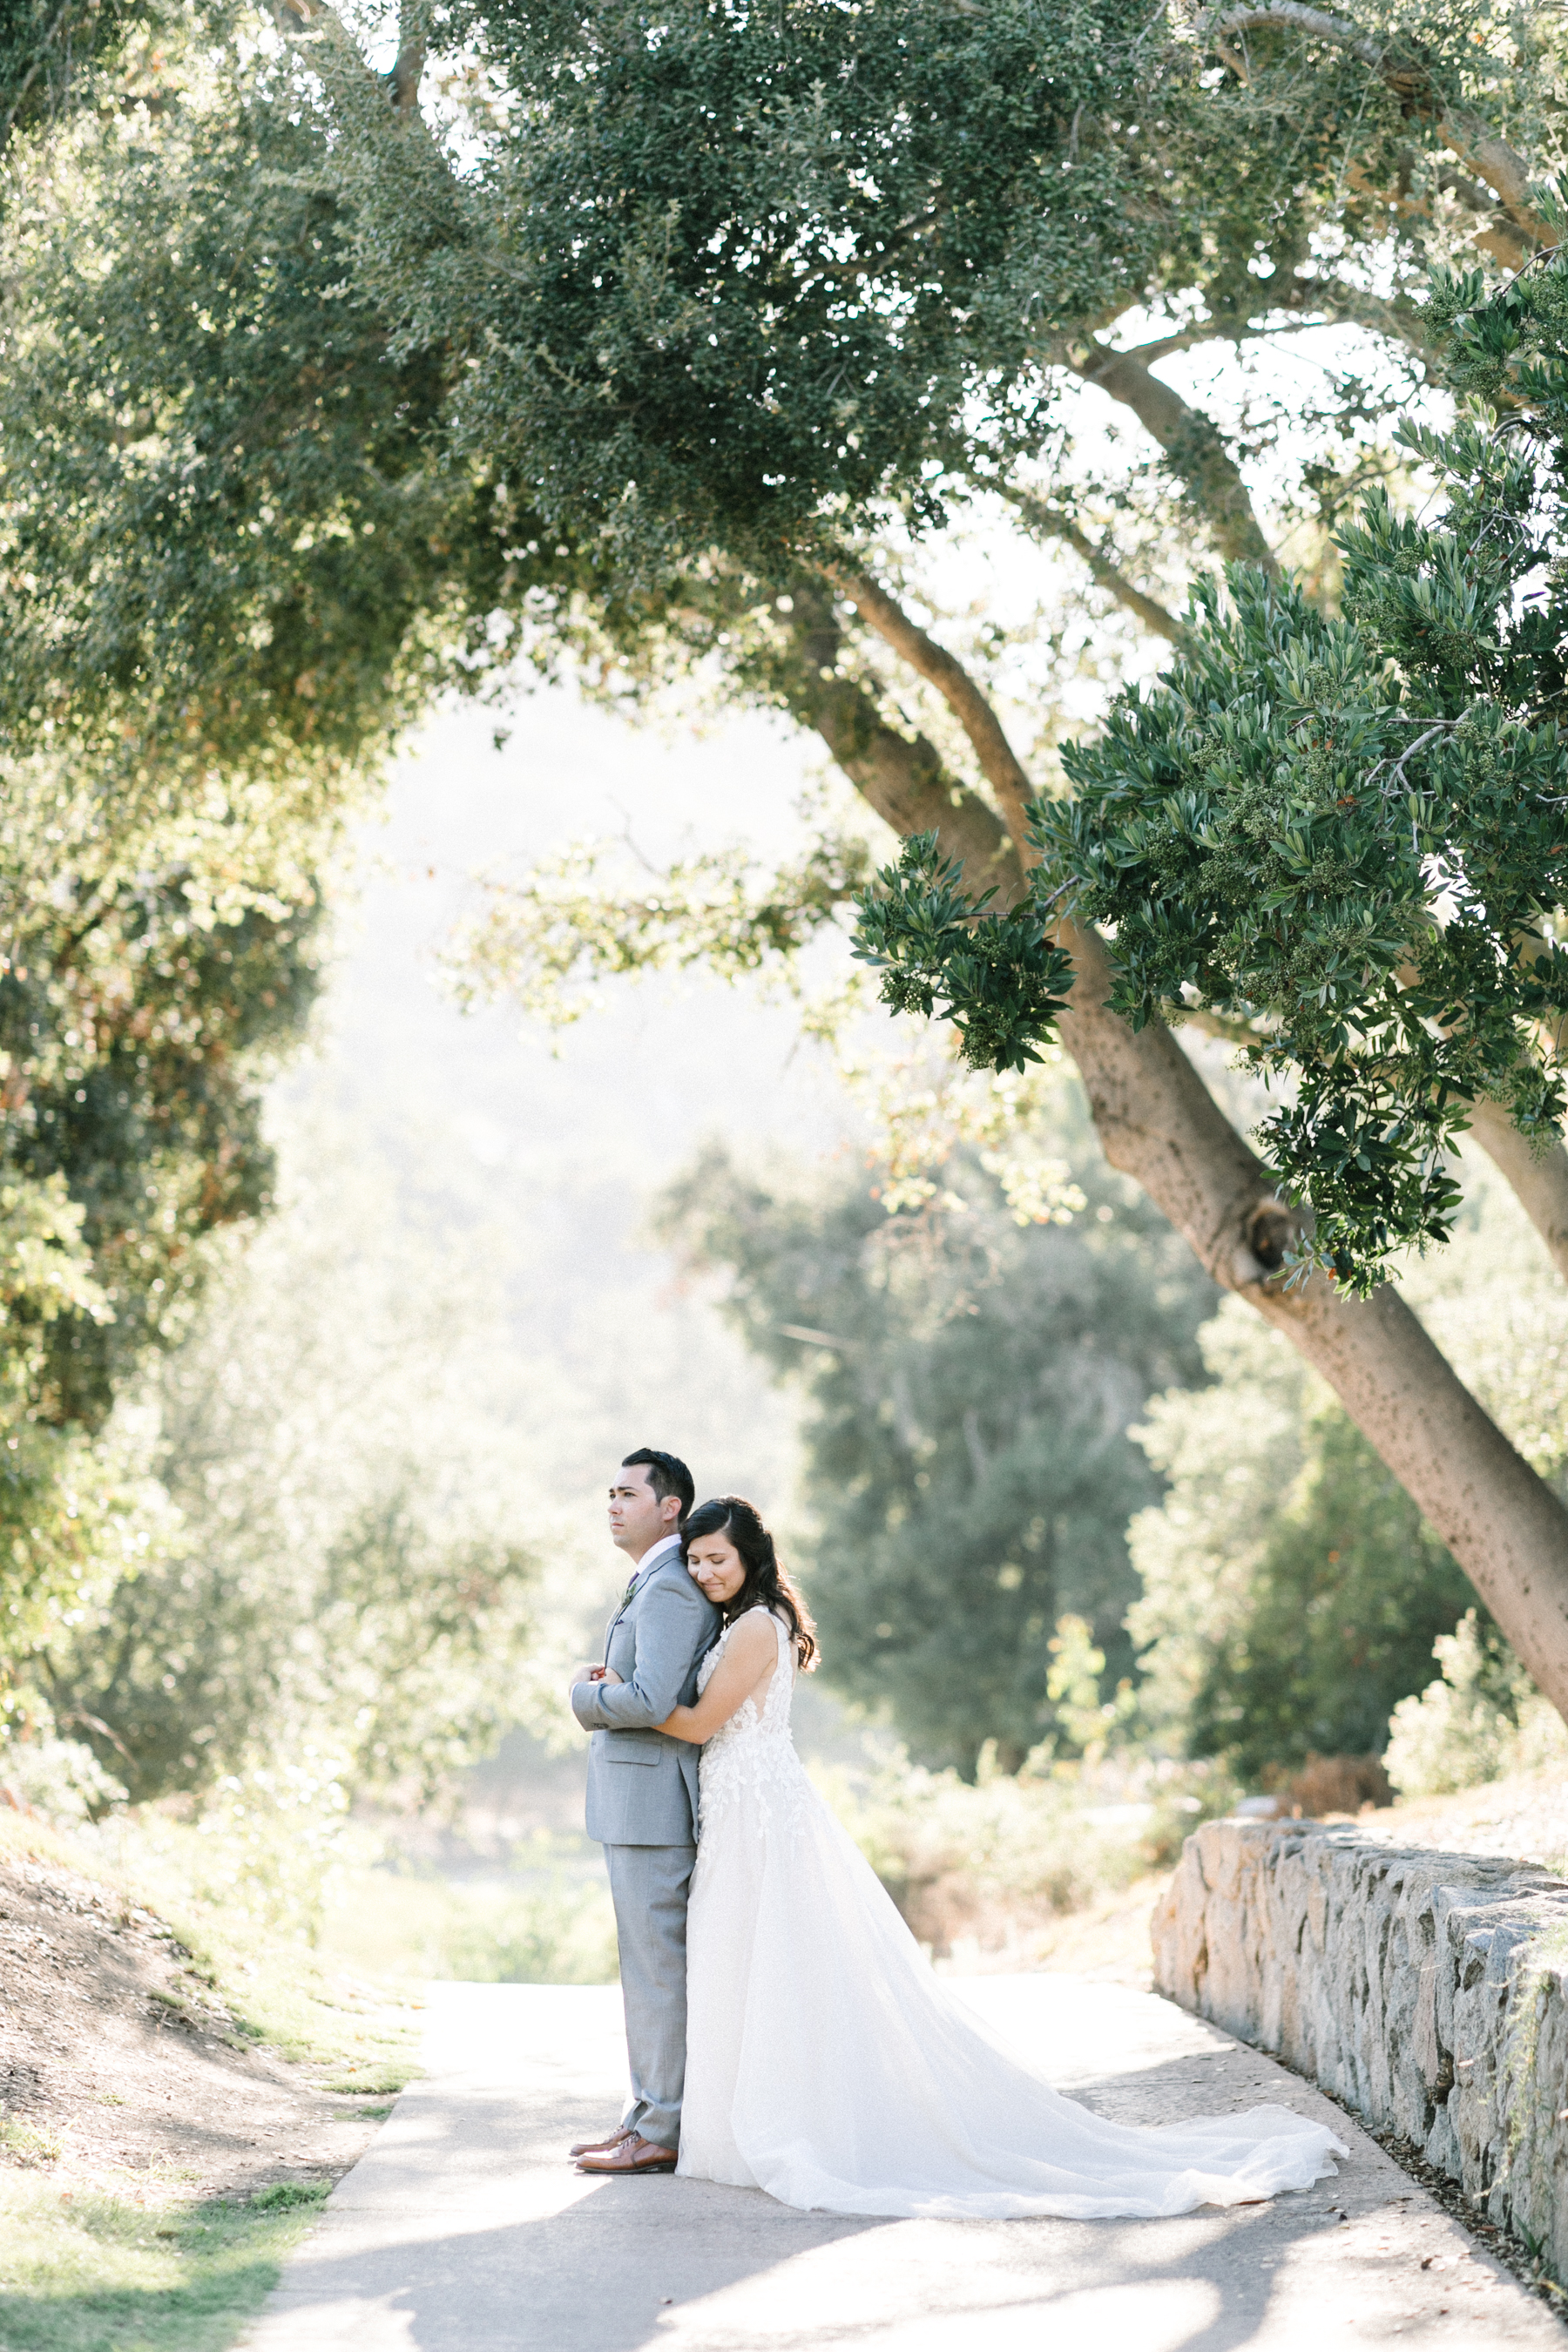 Jordan and Alex's Mt. Woodson Ramona Wedding Great Woodland Photography 8-31-19-24.jpg